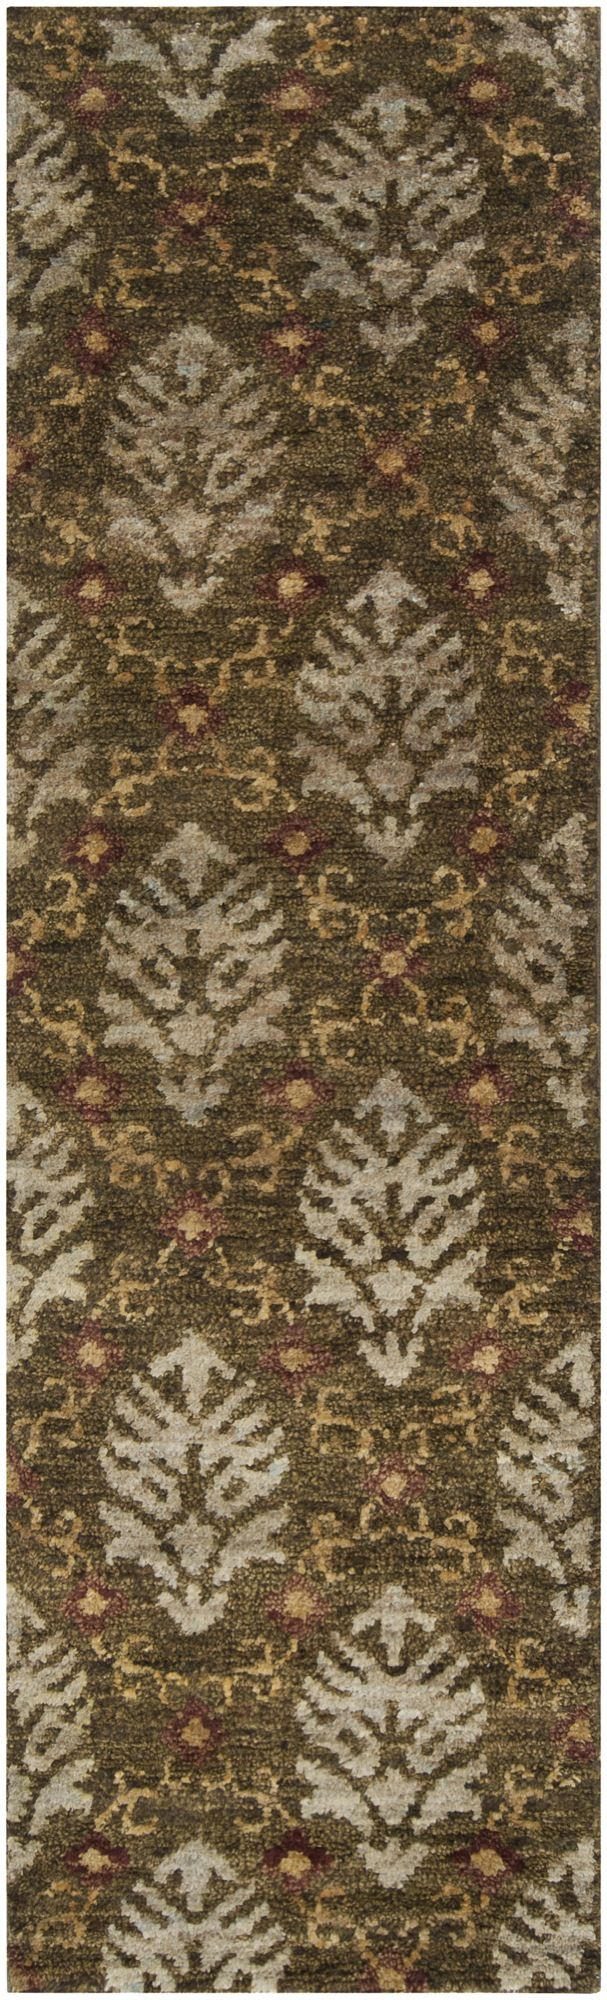 surya scarborough natural fiber area rug collection